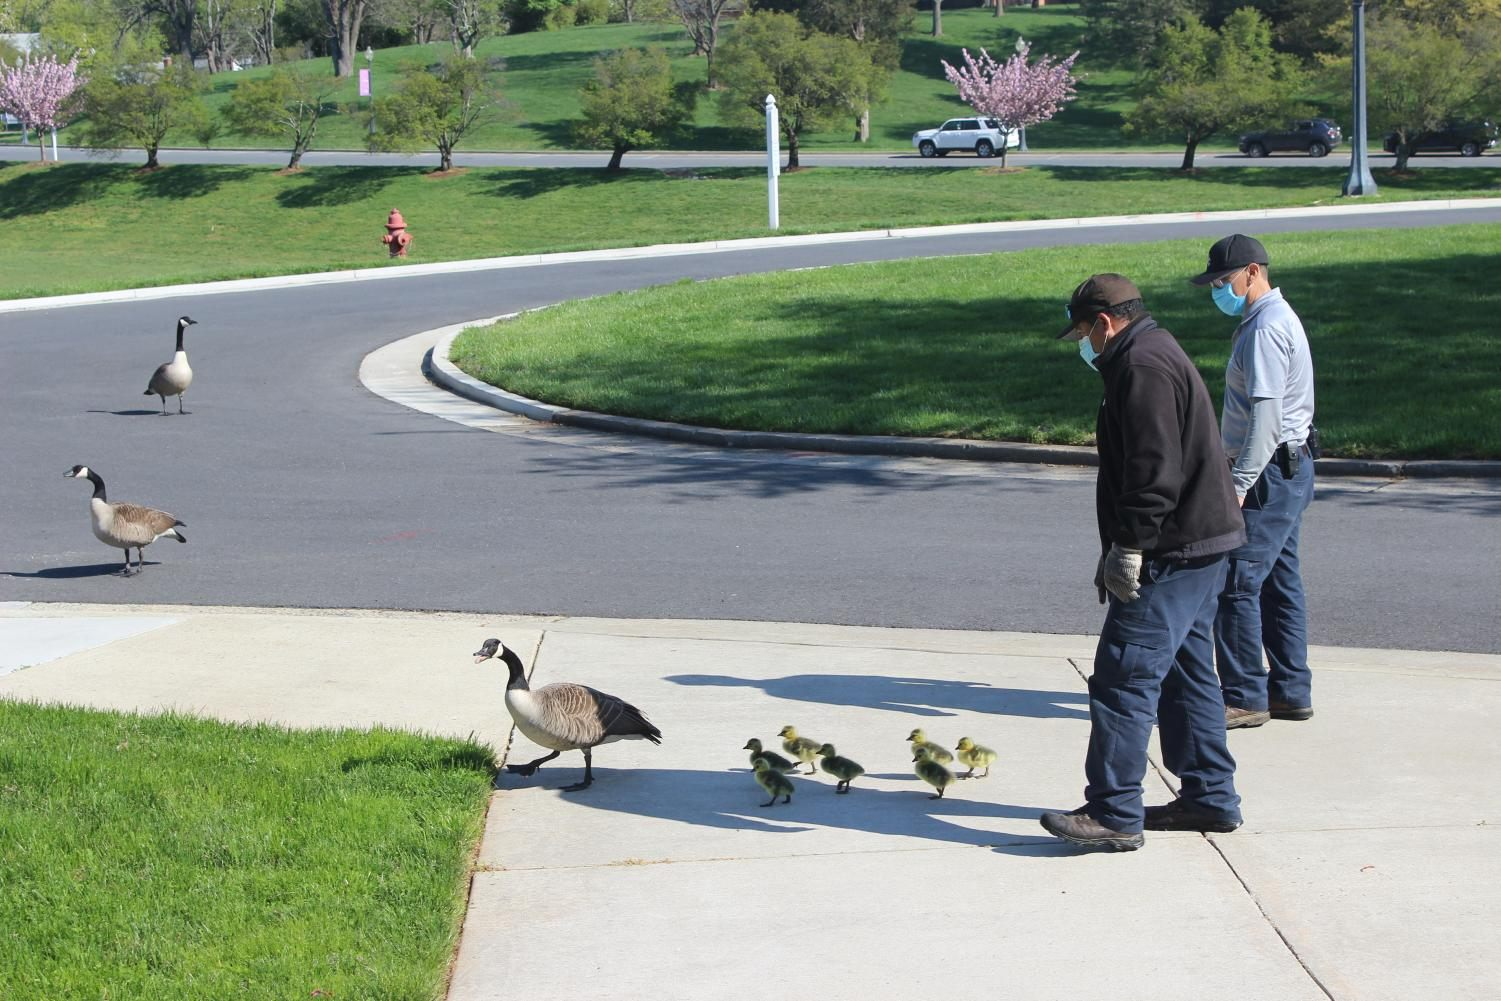 Escorting the newborn baby geese out of the courtyard.